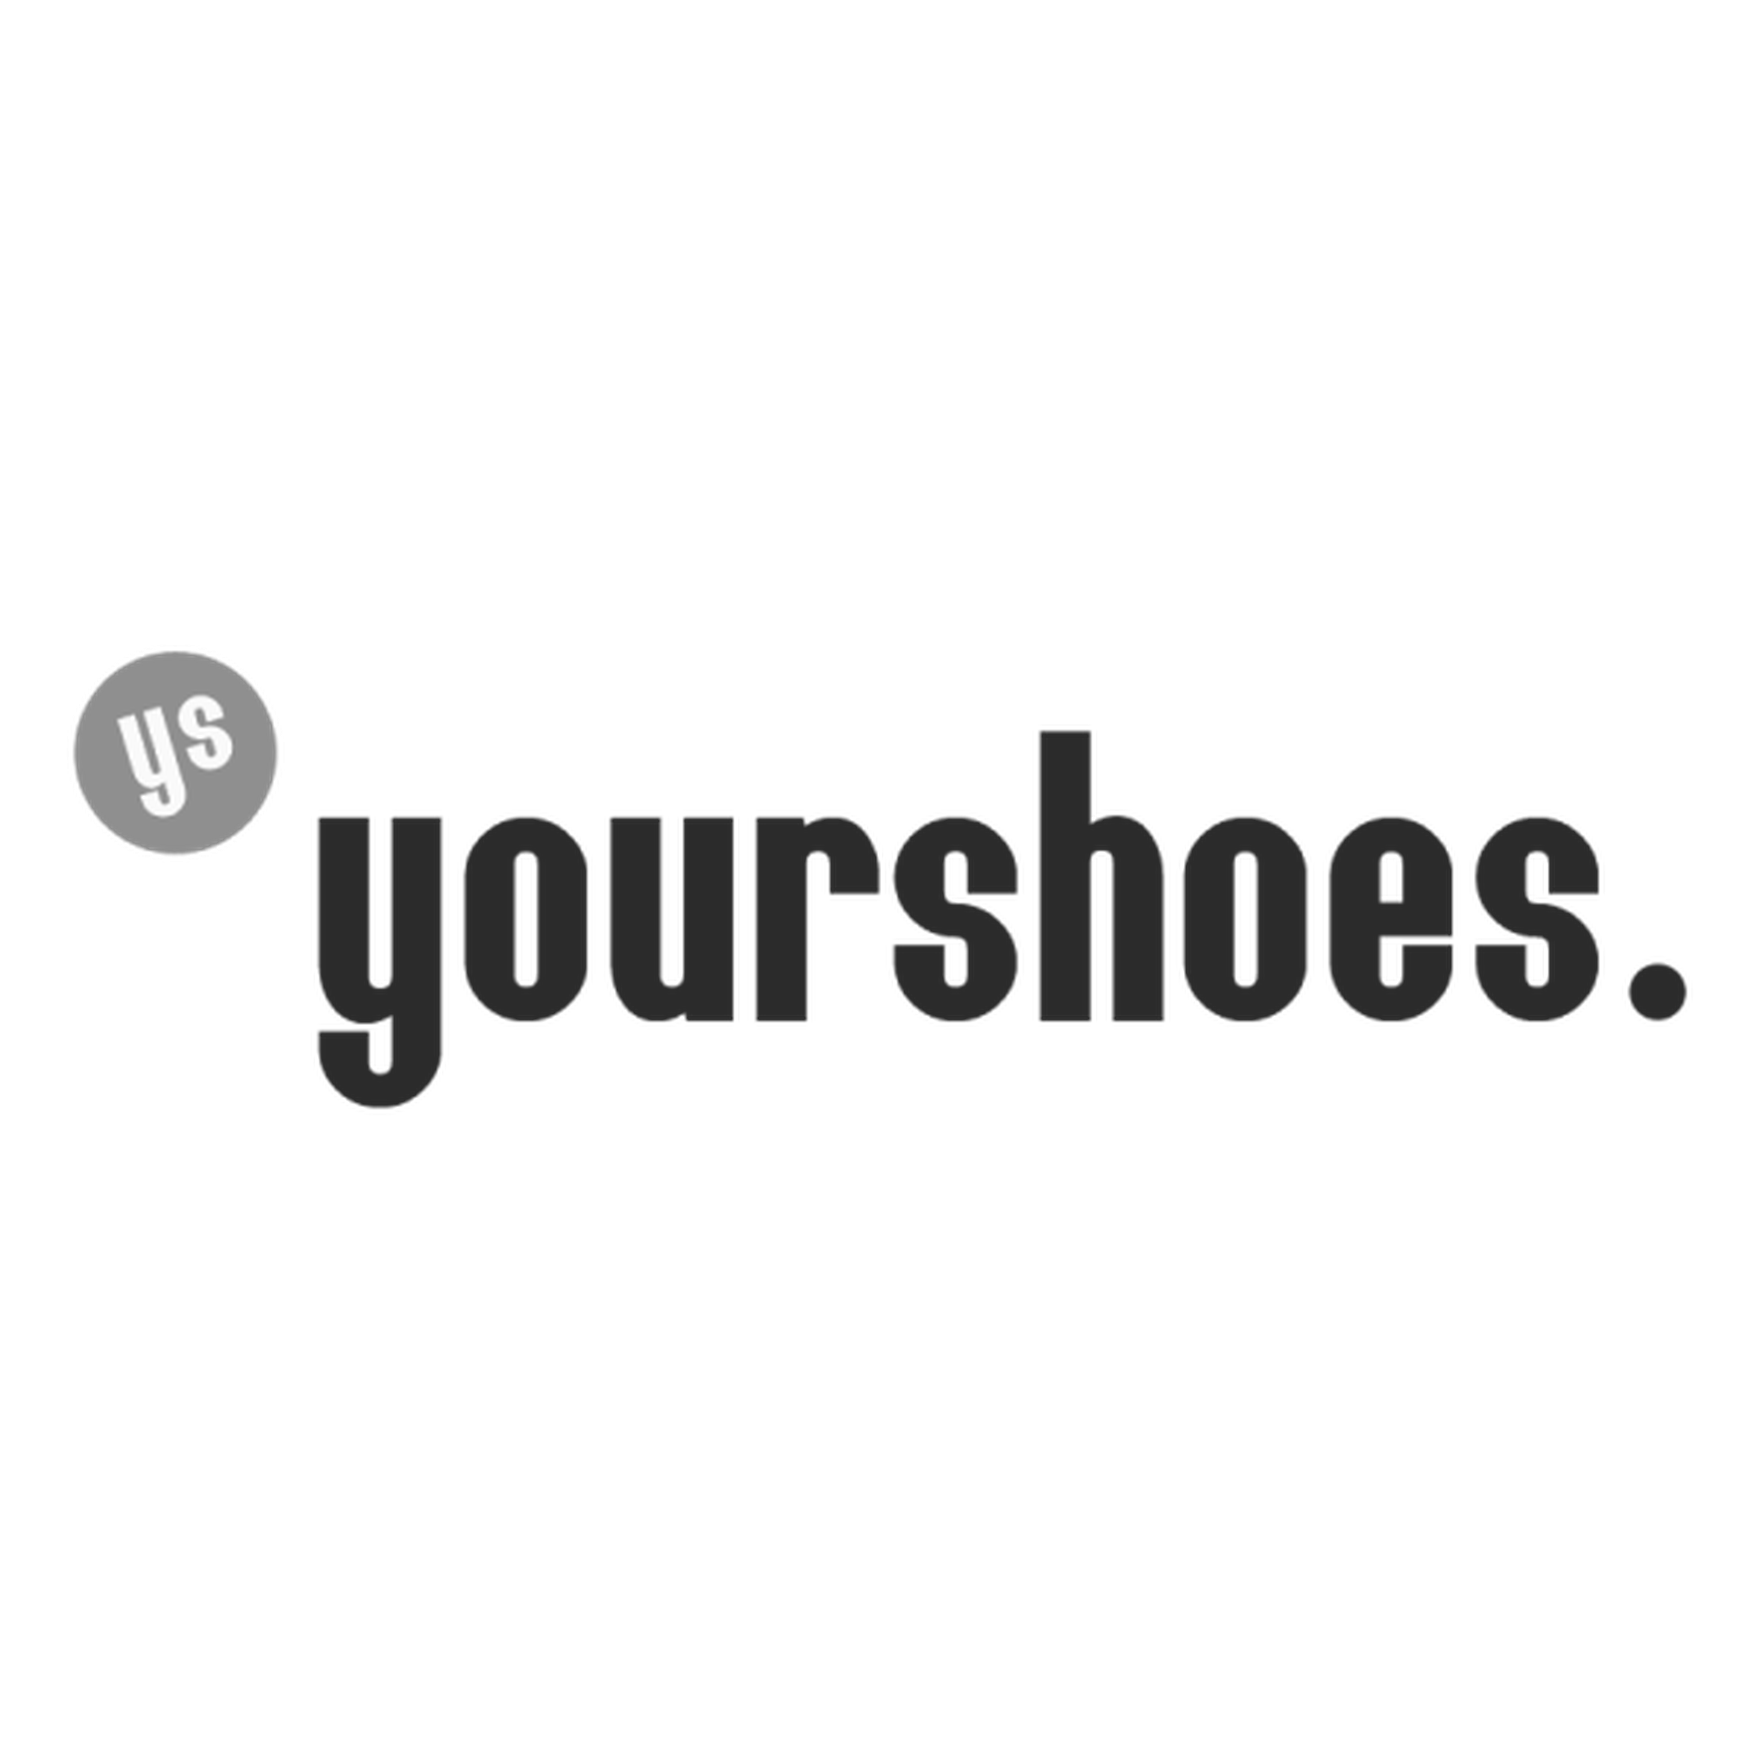 Yourshoes